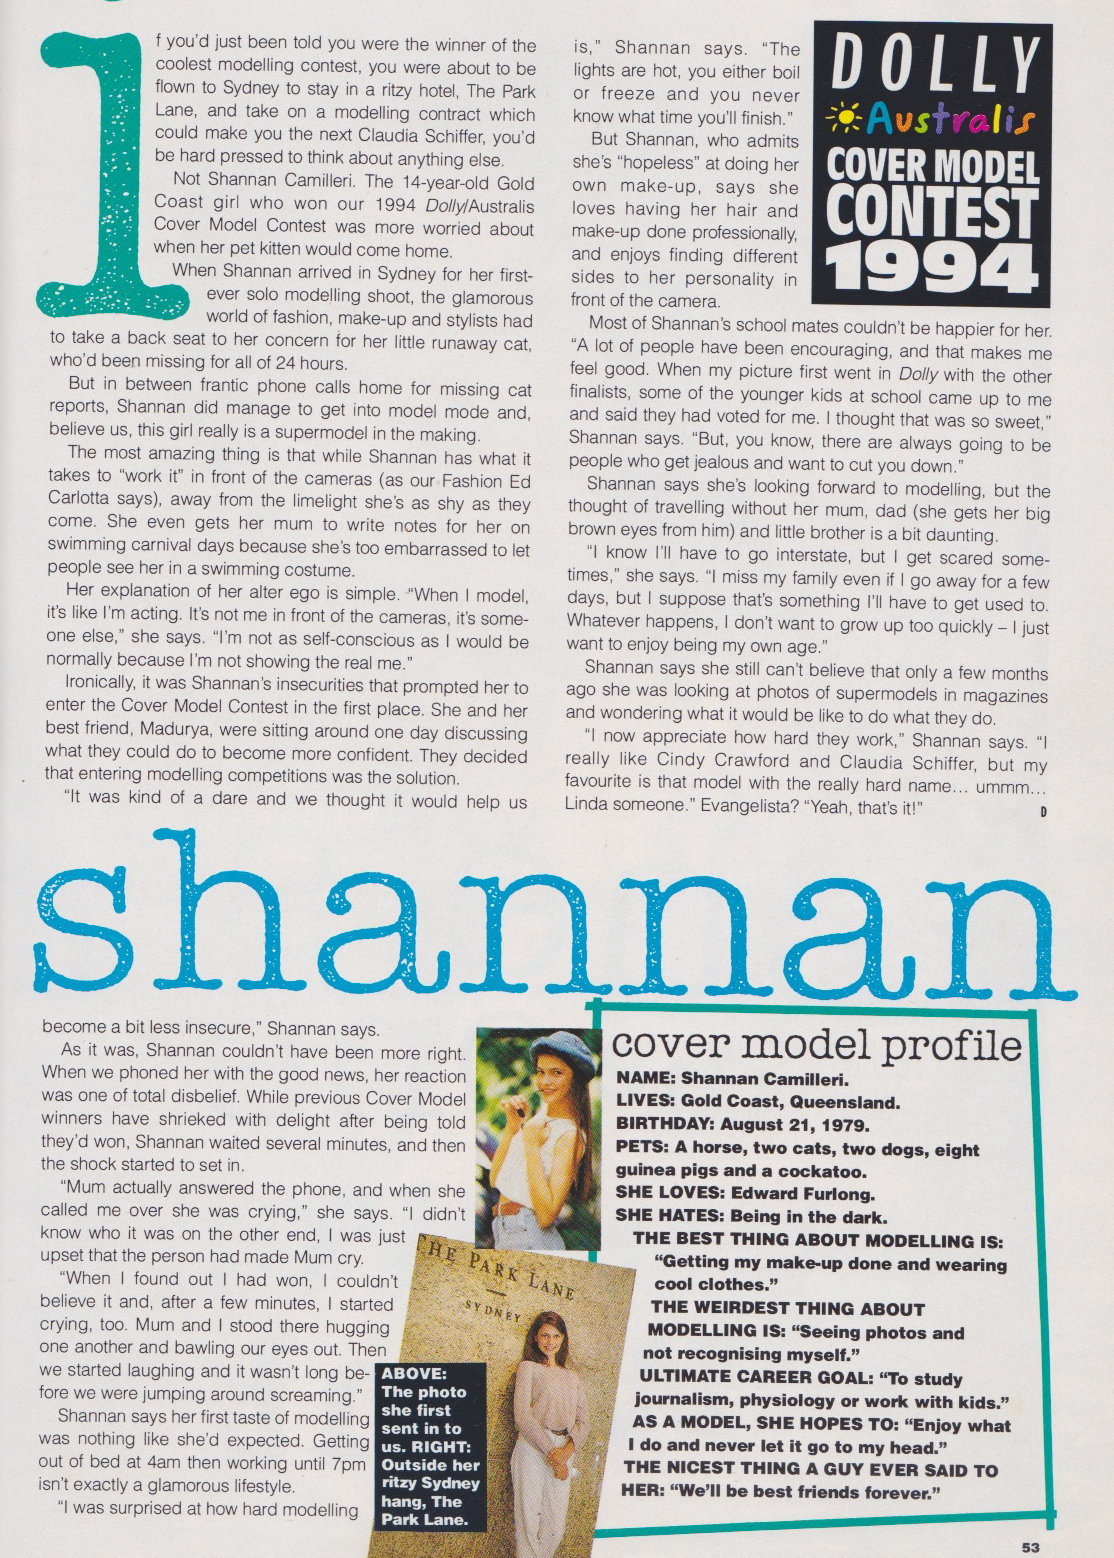 Dolly Covergirl Competition | 1994 Article (Winner) 02.jpeg